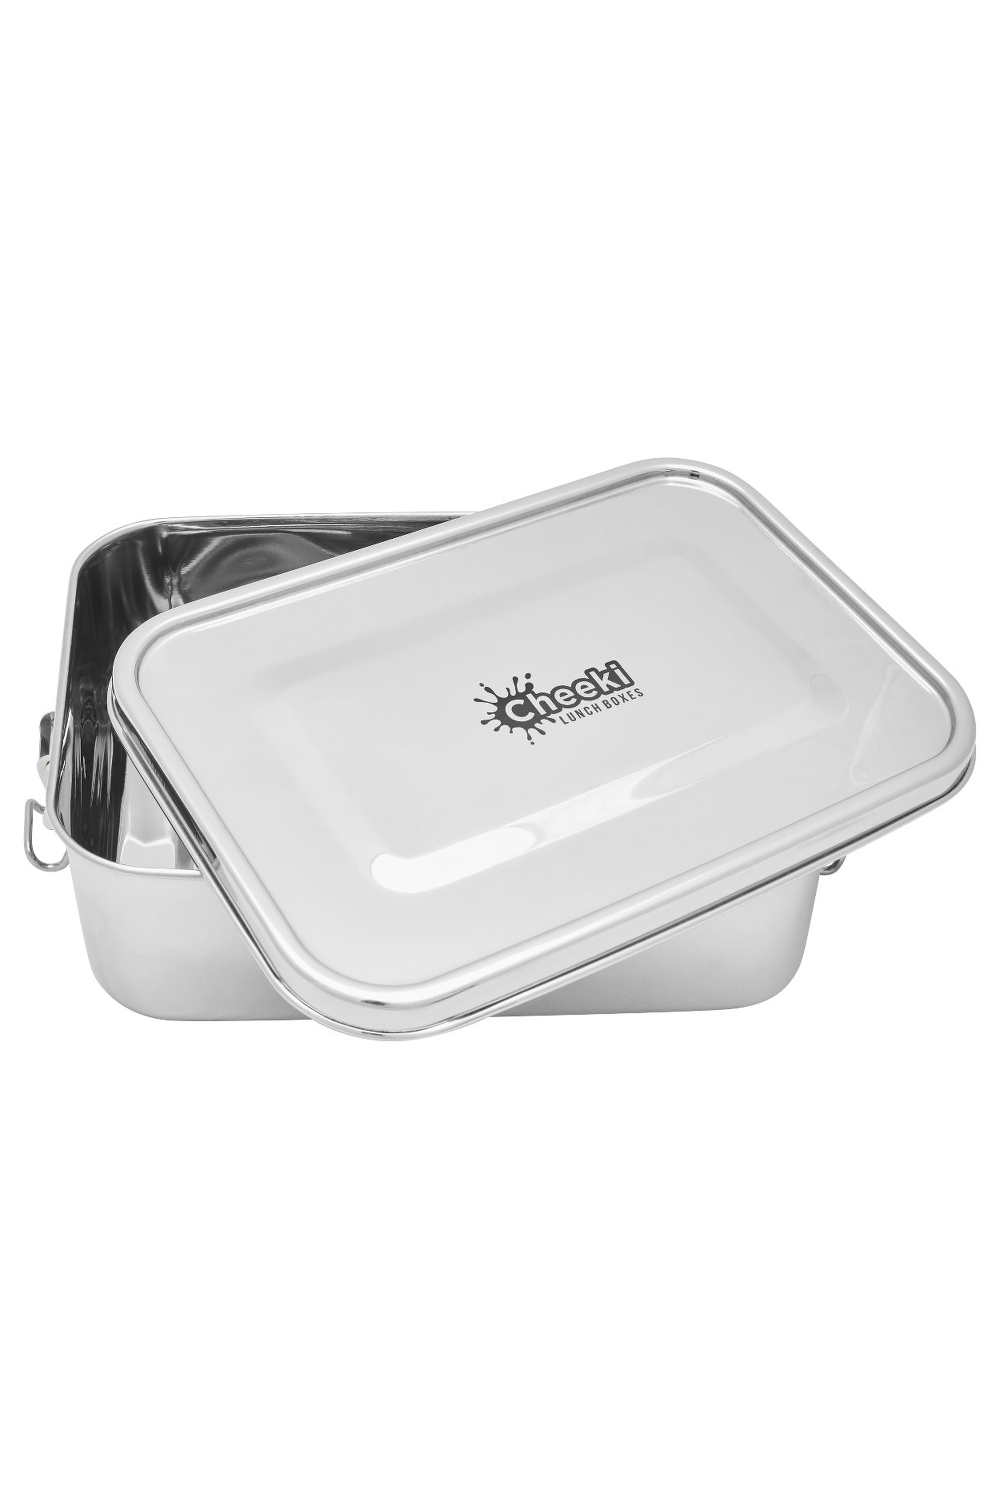 Cheeki | Cheeki 1.6 litre lunch box | Plastic Free Living | Environmentally Friendly Homewares